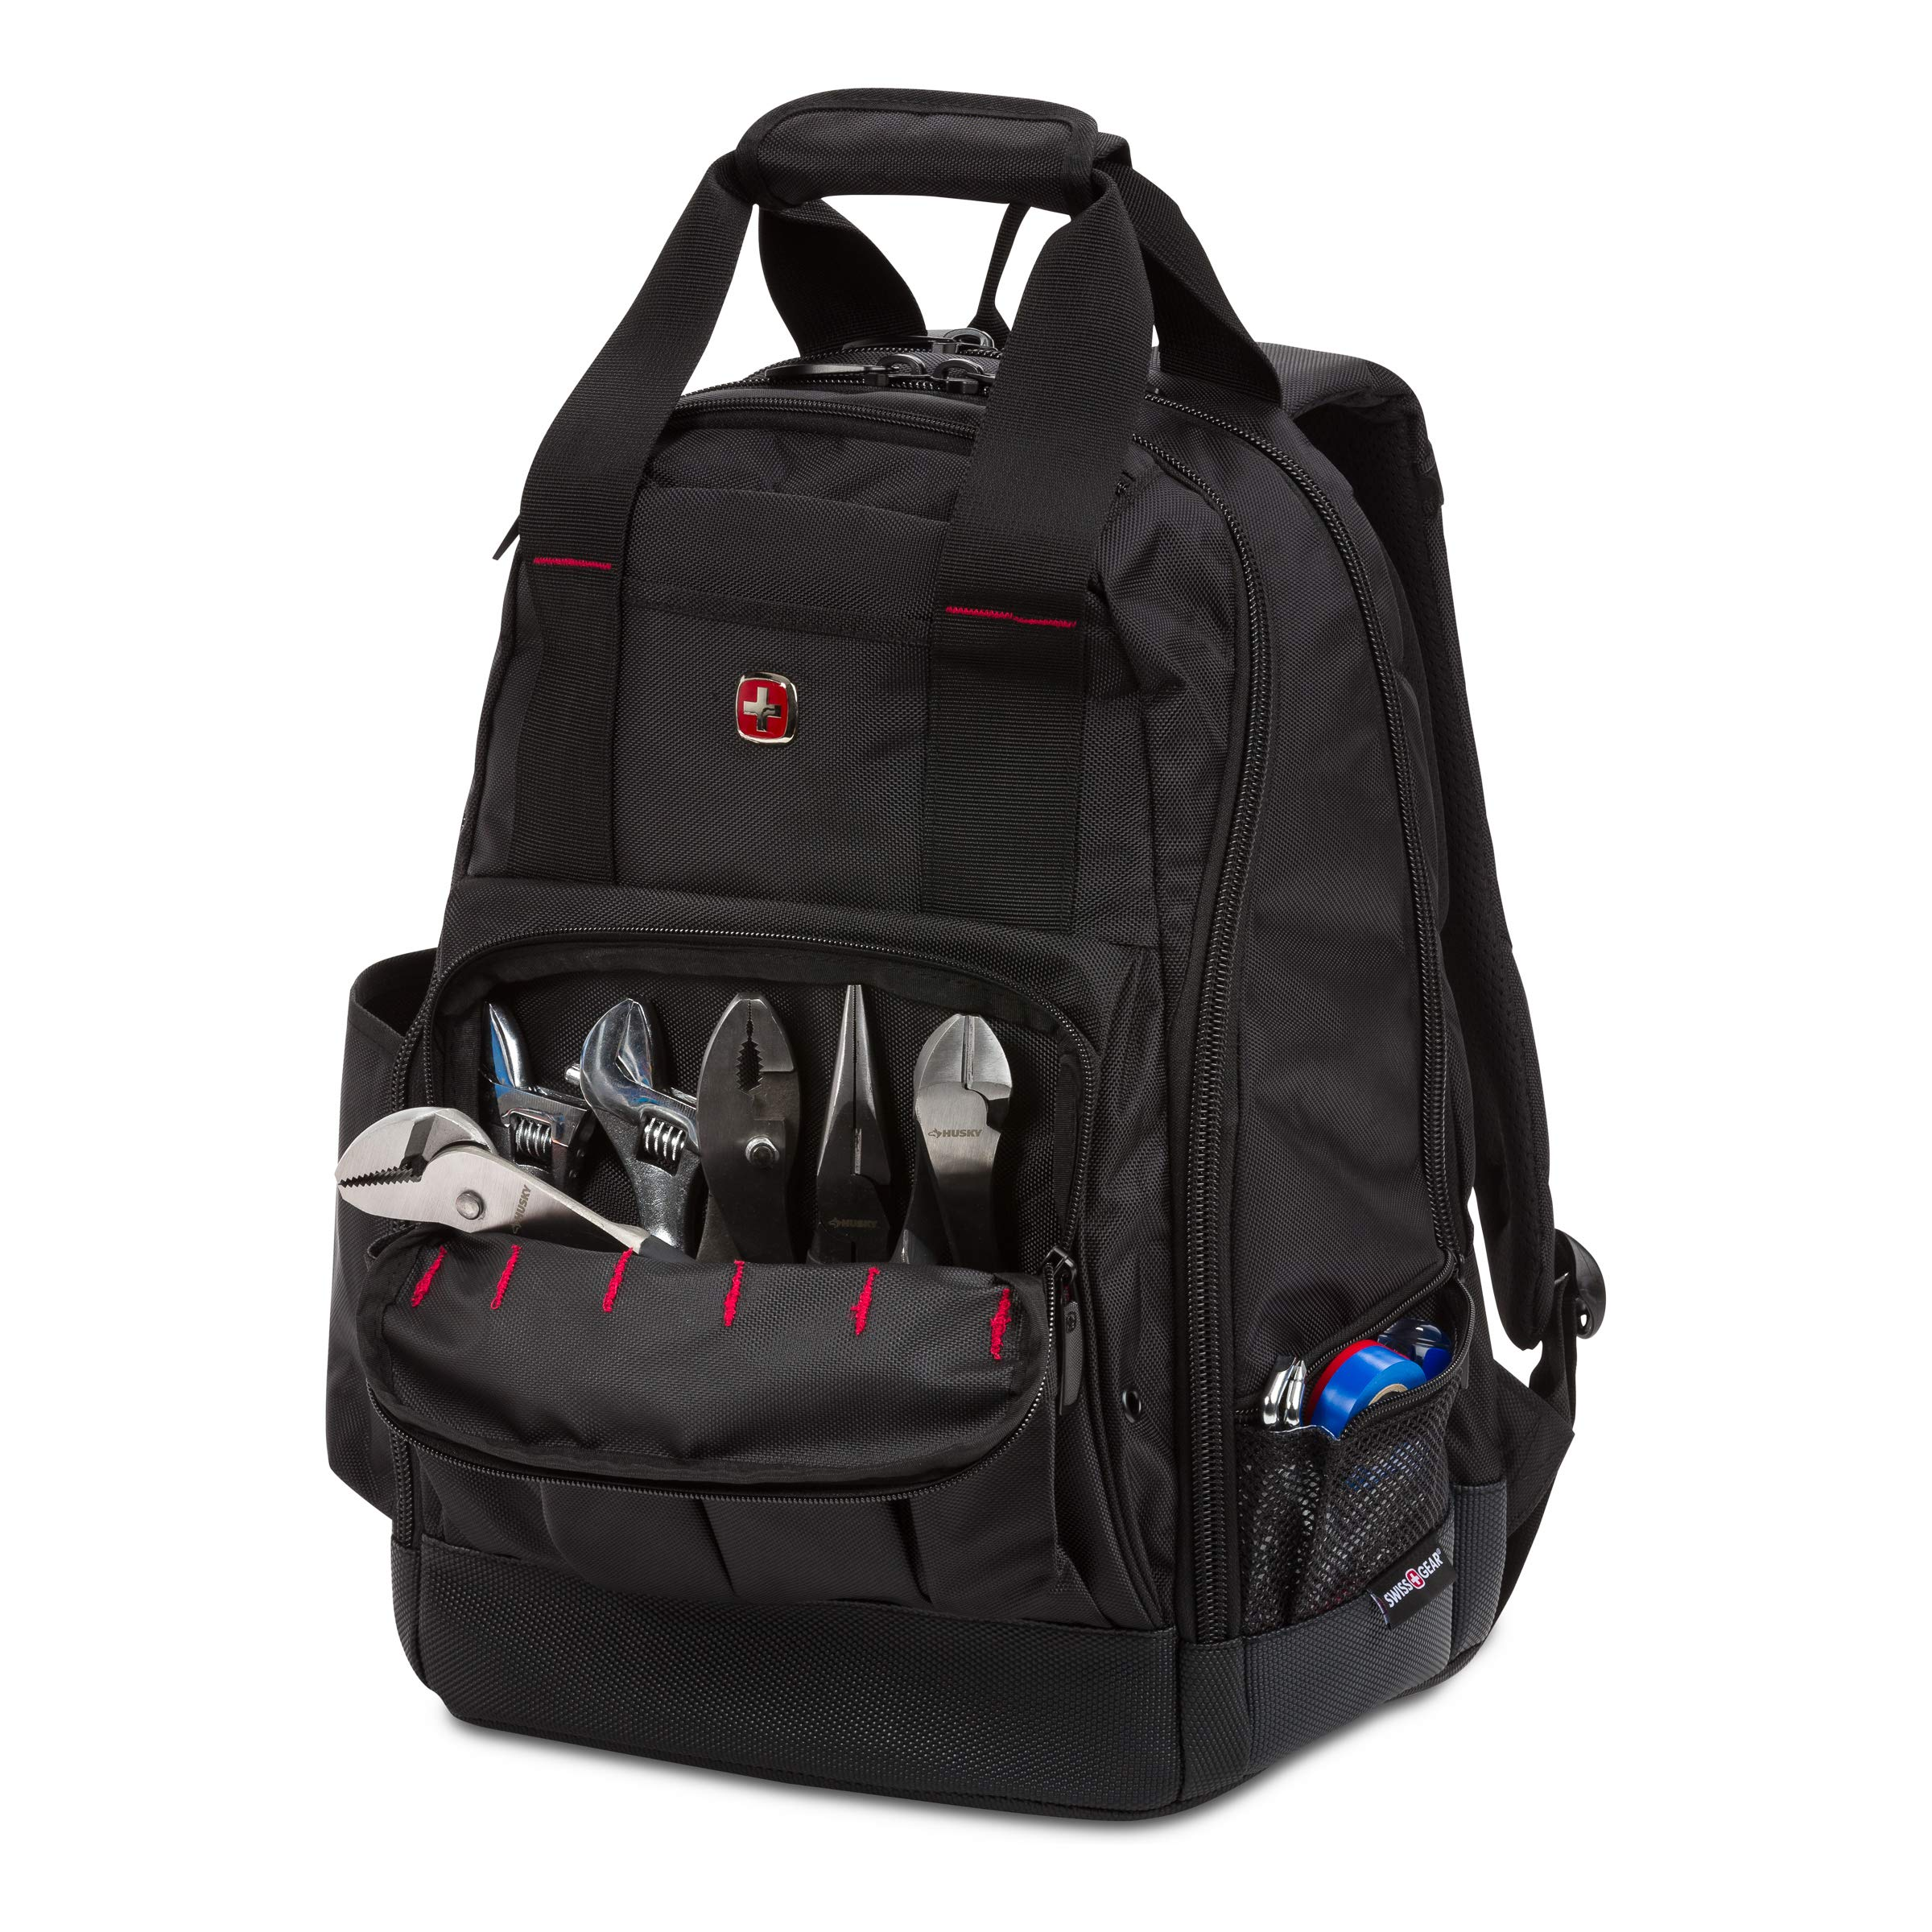 SWISSGEAR 2767 Large Durable Work Pack Tool Backpack With Padded Laptop Compartment | Tool Storage, Part Organization, Wet/Dry Pocket - Black by SwissGear (Image #6)